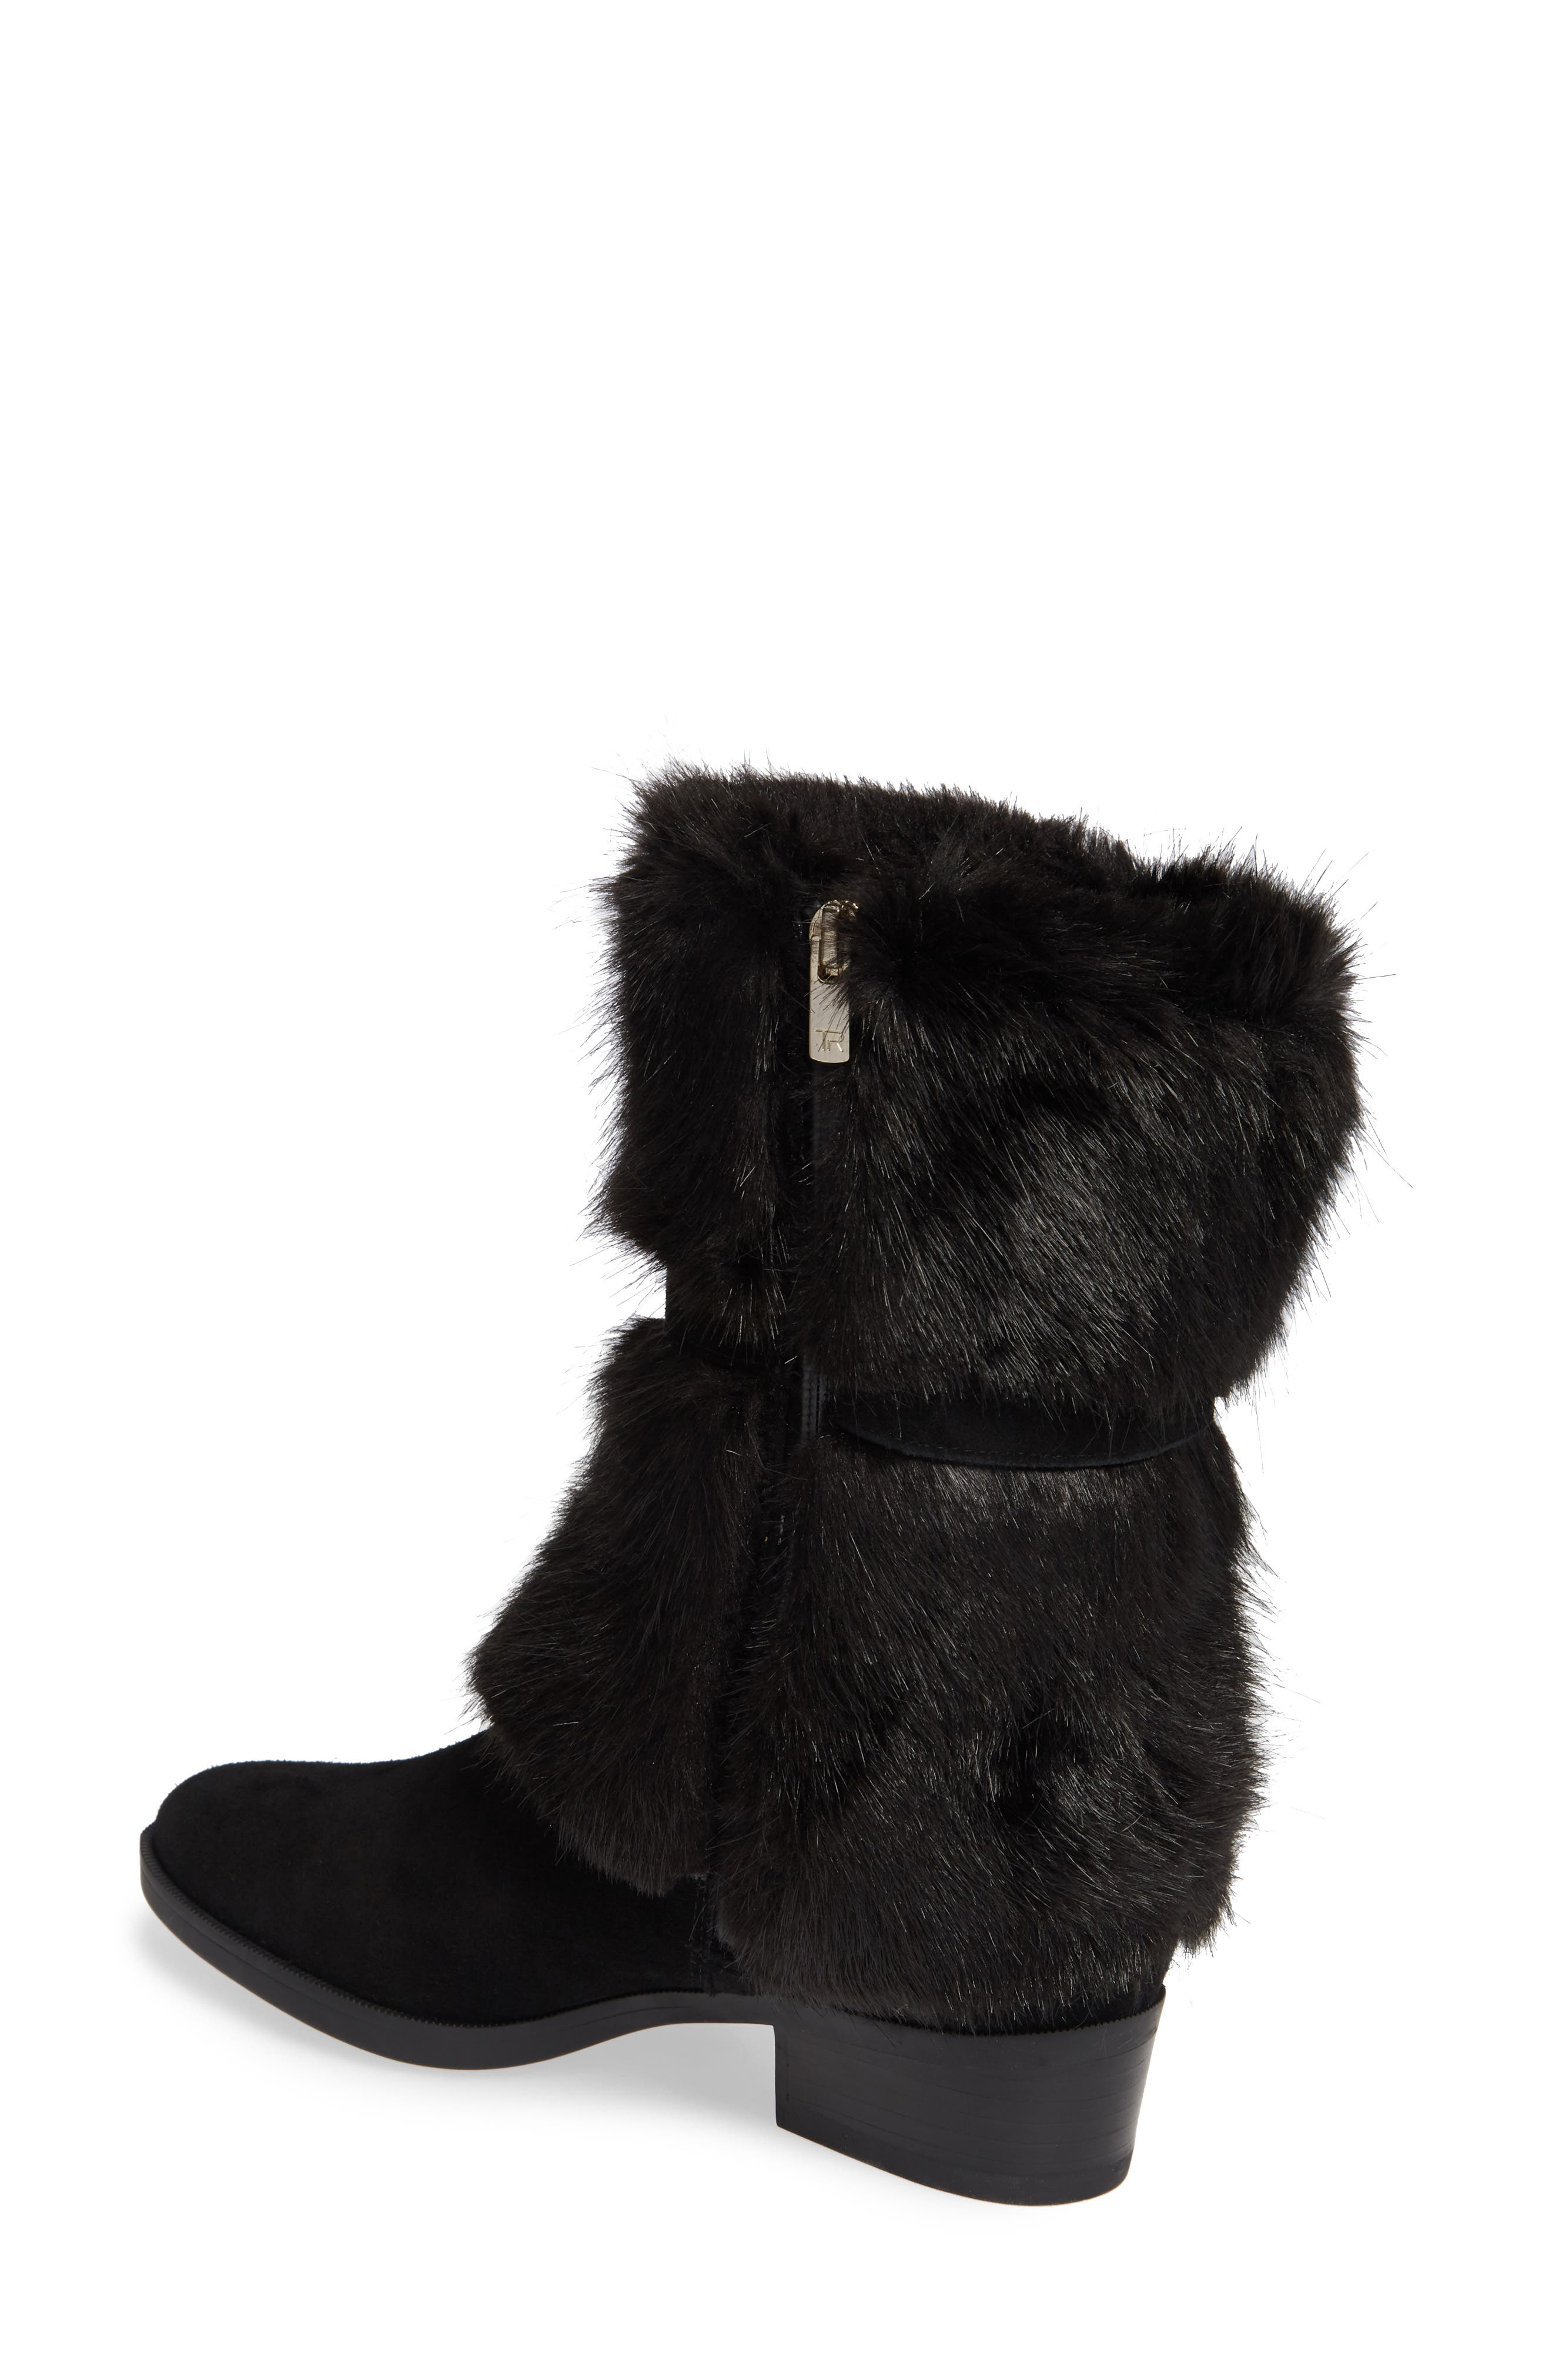 TARYN ROSE, Giselle Water Resistant Faux Fur Boot, Alternate thumbnail 2, color, BLACK SUEDE